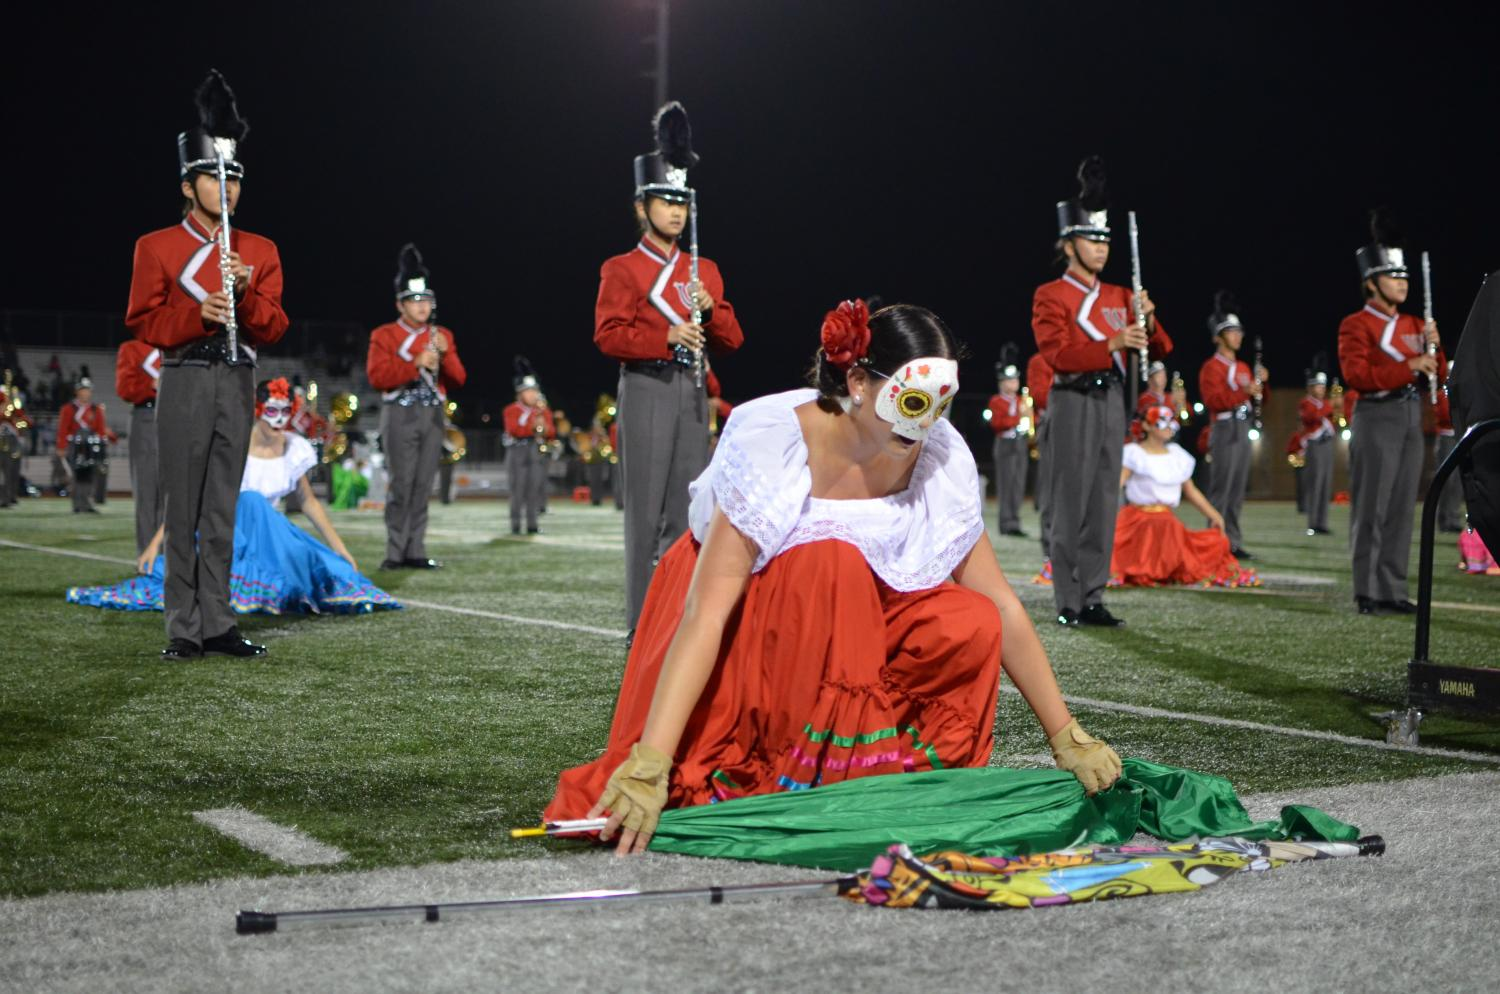 Colorguard performer, Alexis Chirco, senior, sets down her flag and takes a deep breath as she begins the next segment of the halftime show.